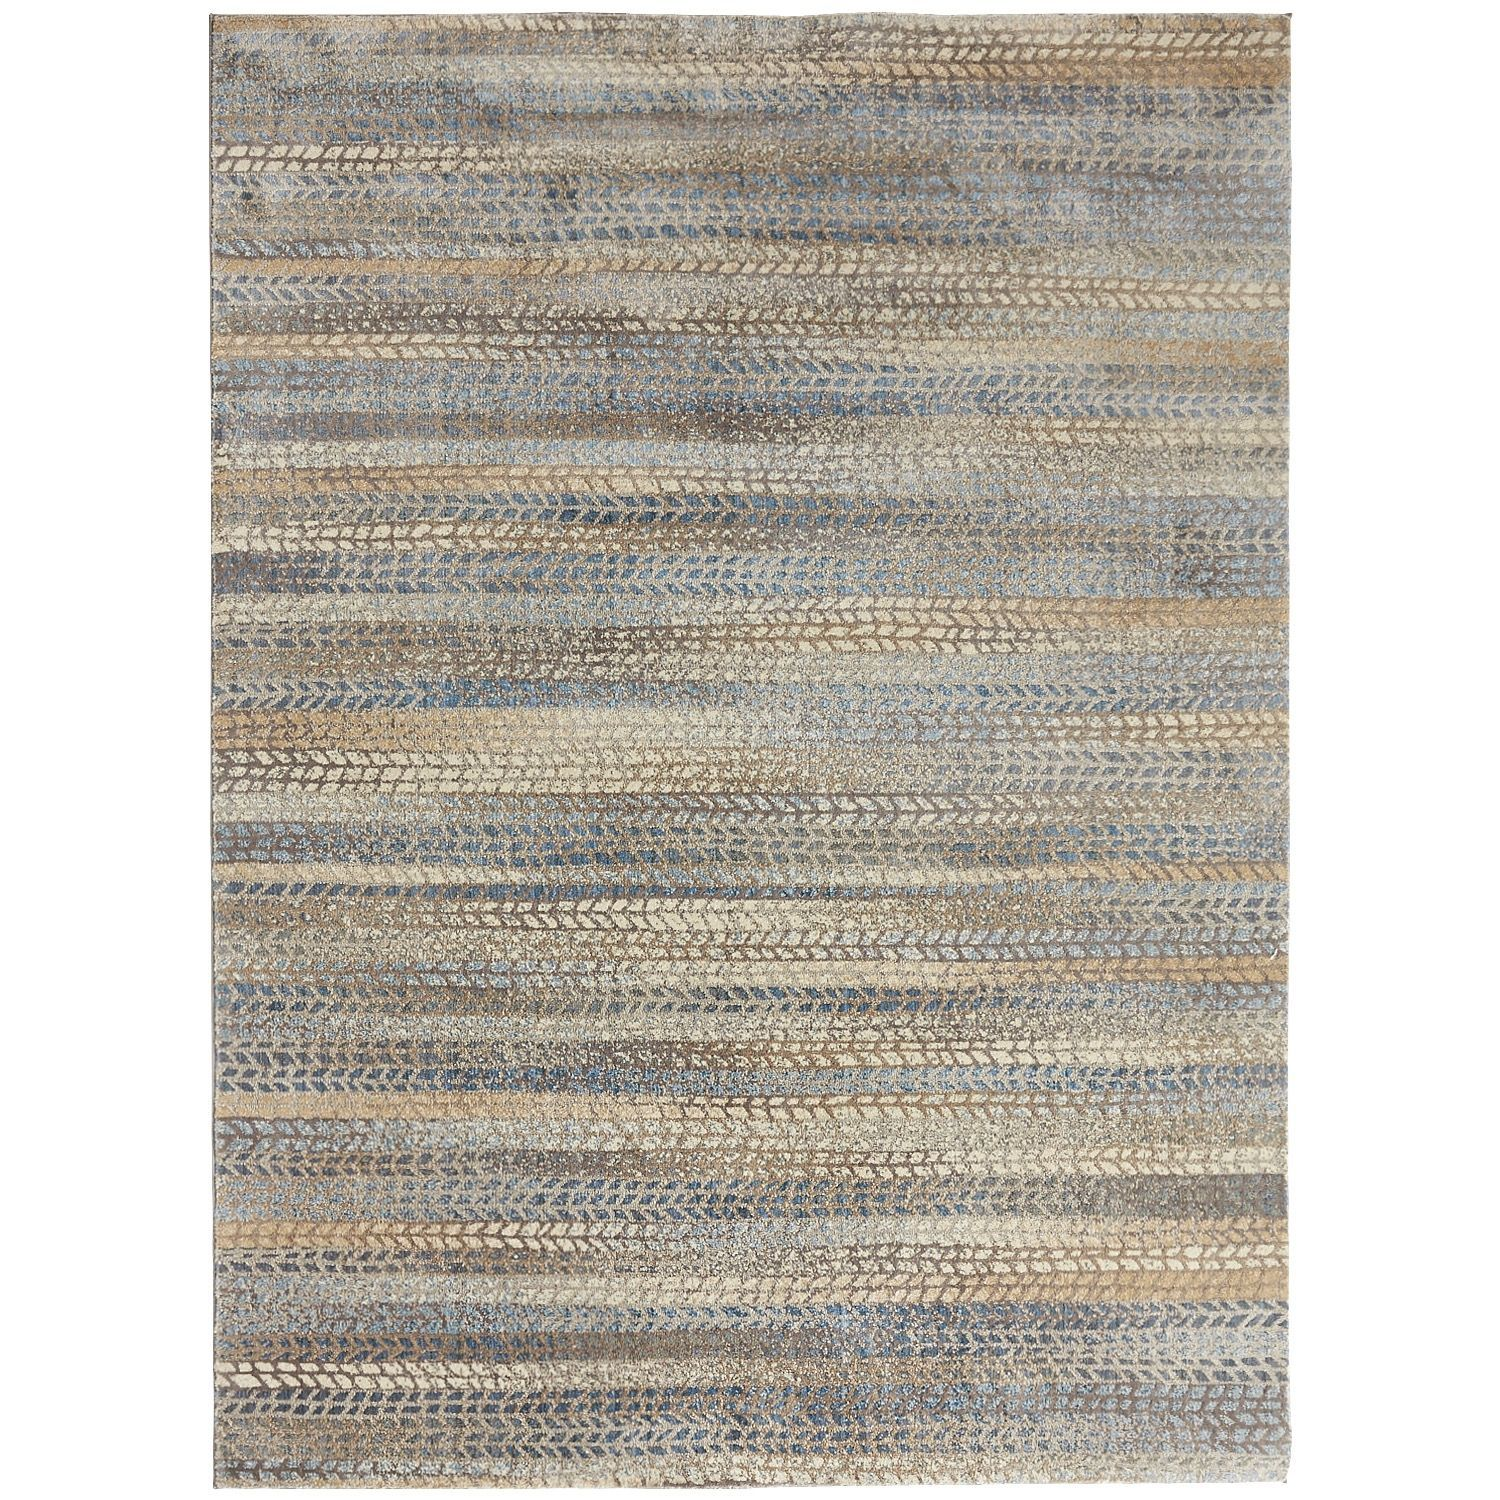 Atley Striped 8x10 Rug Blue